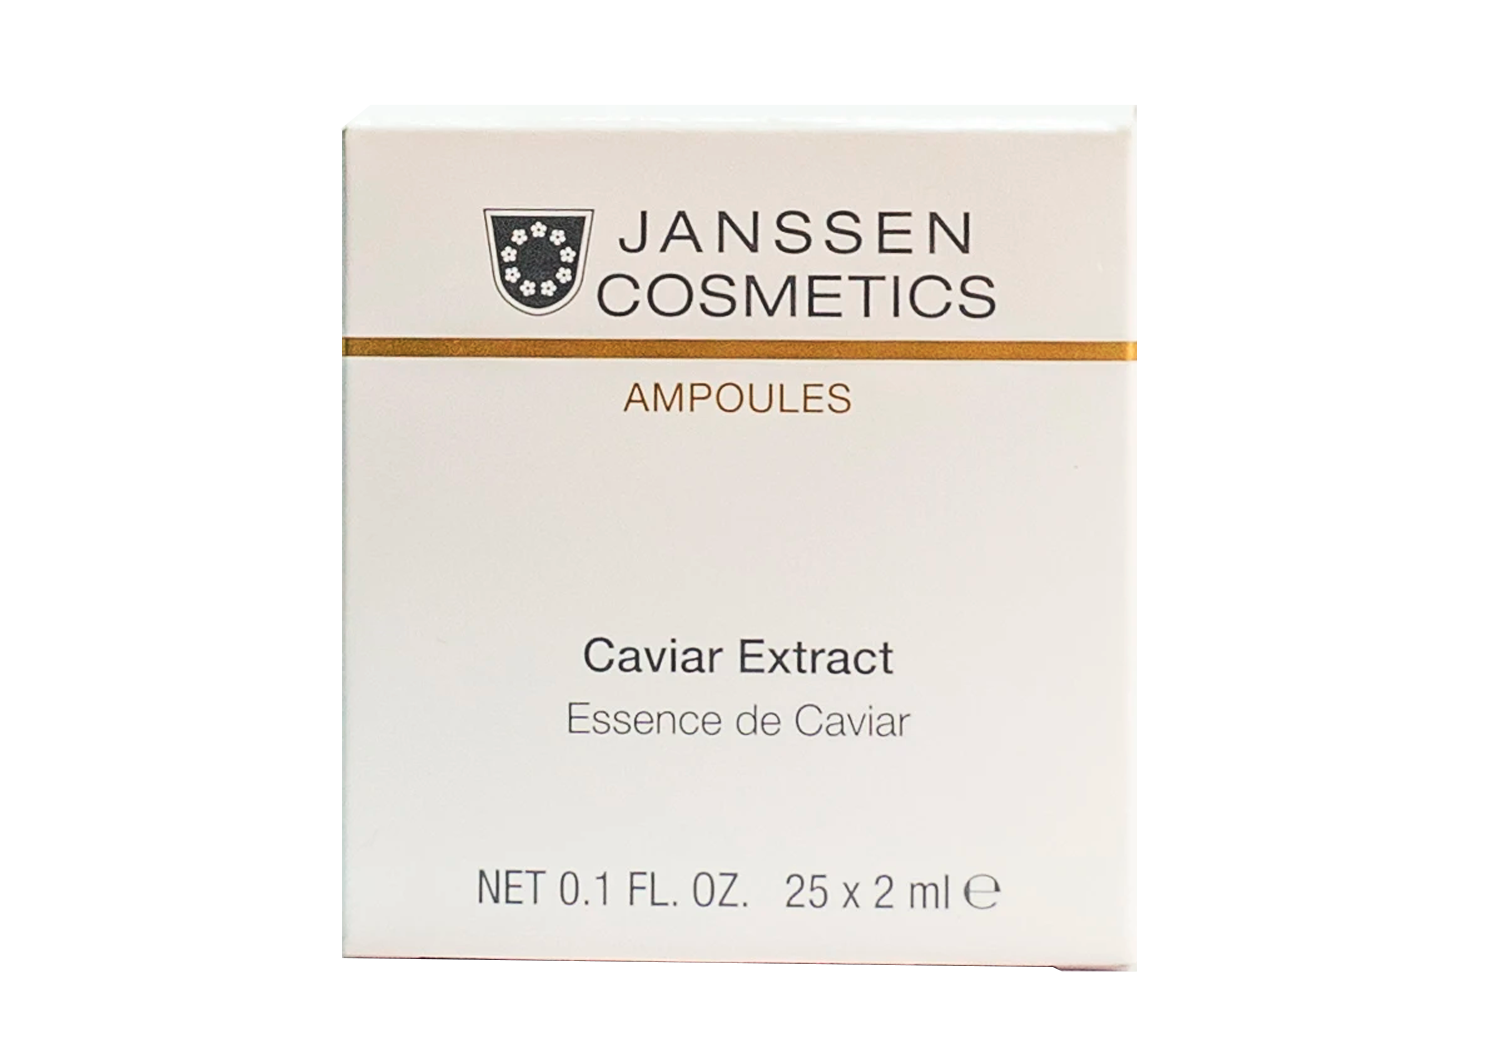 Caviar Extract Janssen Cosmetics